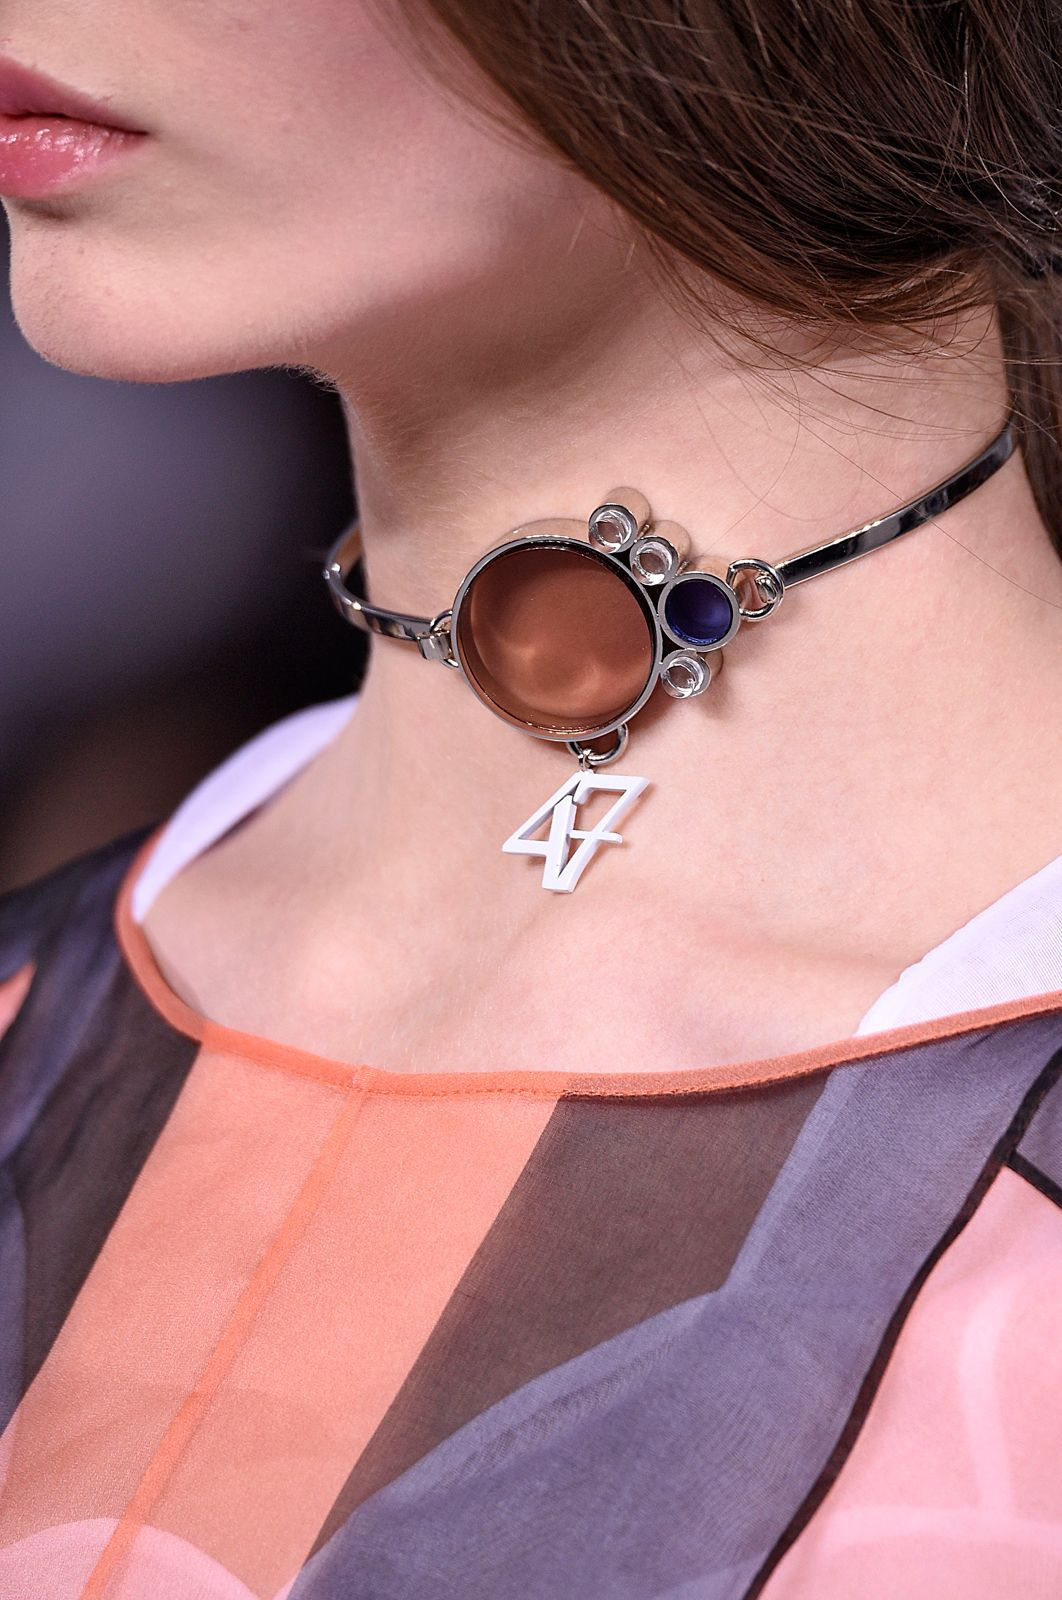 When The Choker & Neck Scarf Trends Collide | Collar Bones & Chokers ...